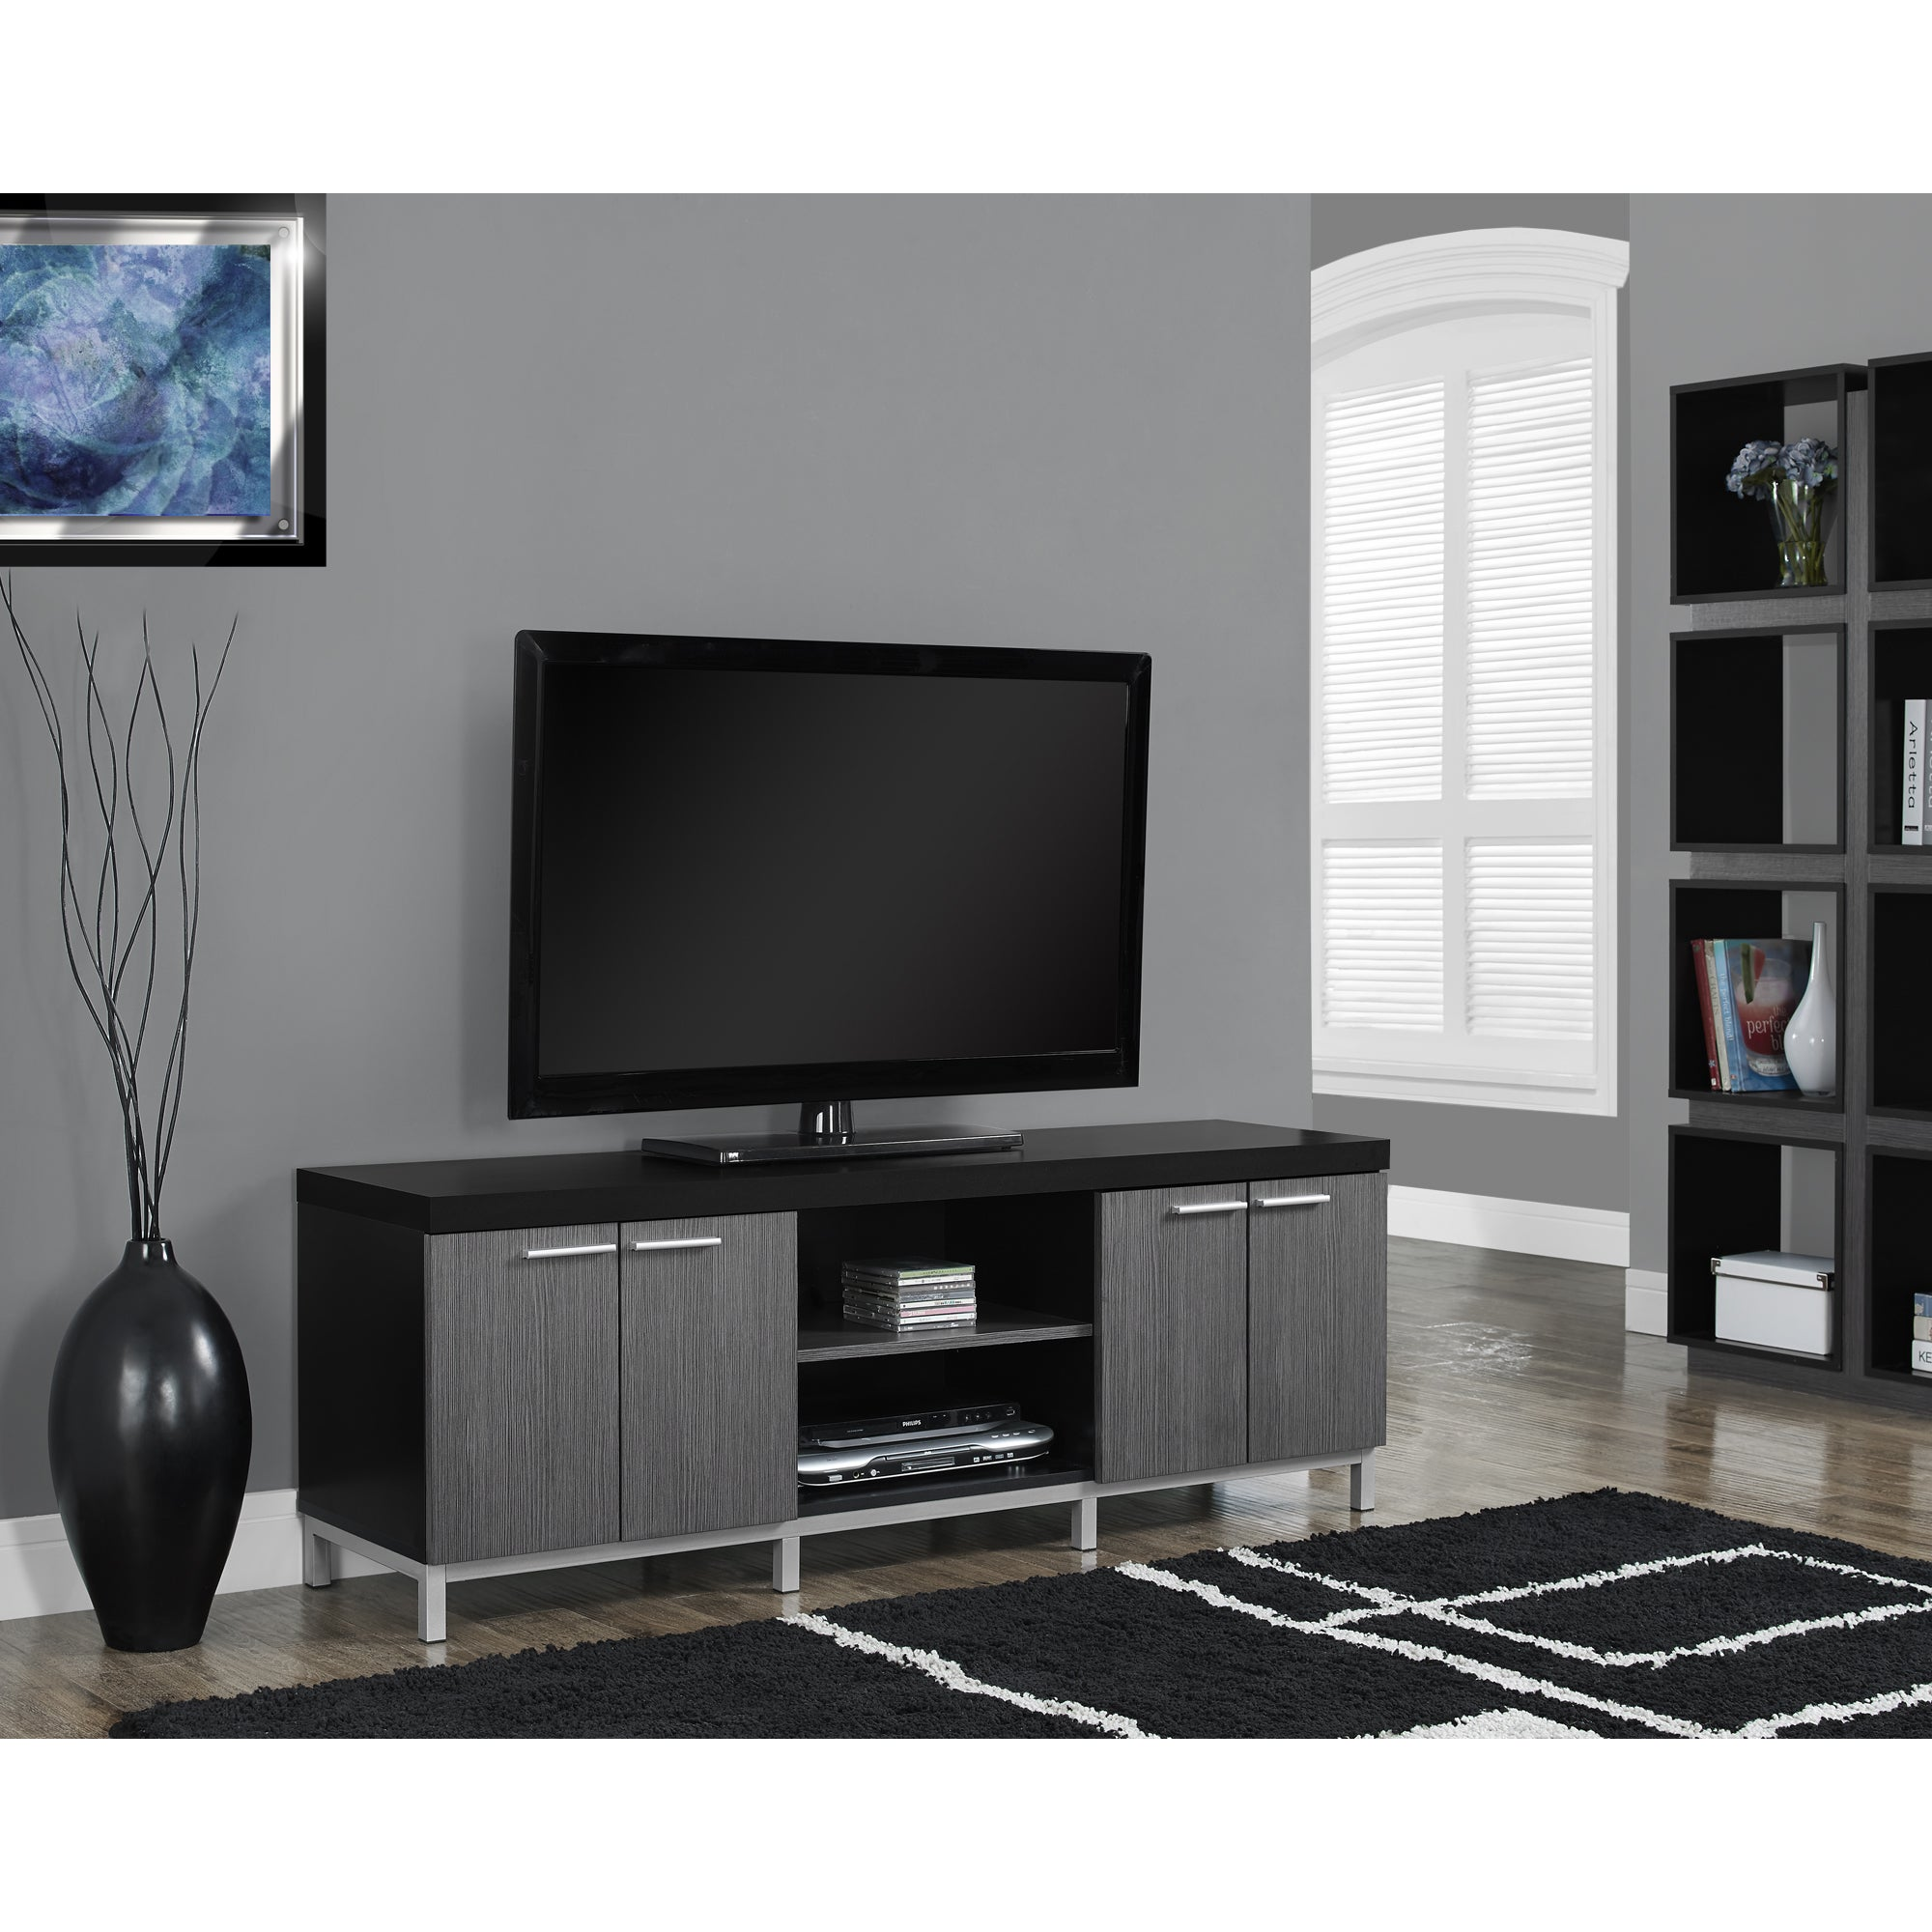 Black and Grey Hollow core 60 inch TV Console